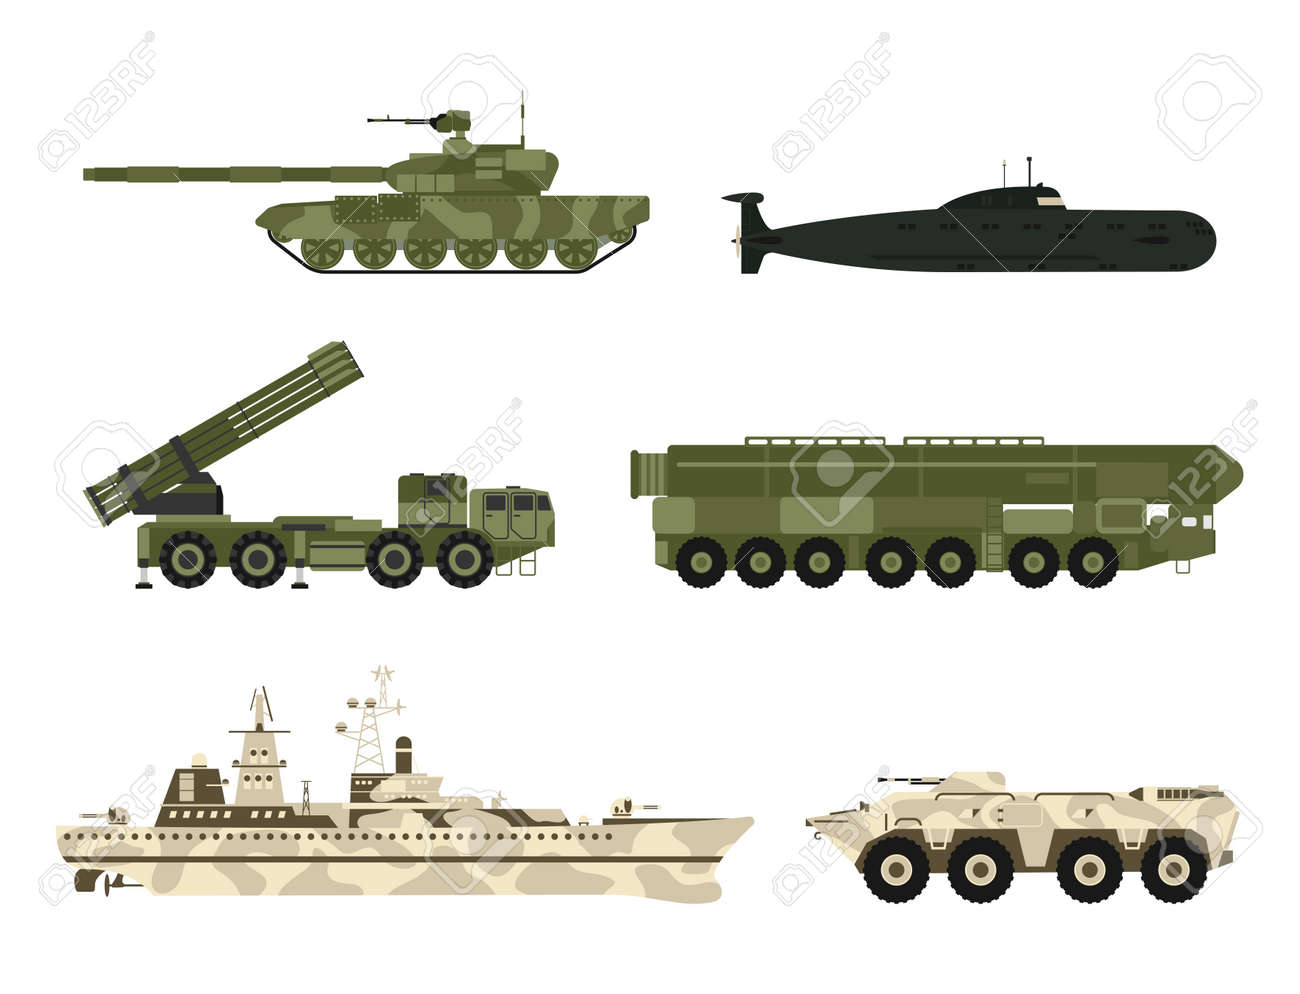 Military army transport technic vector war tanks industry technic armor system armored army personnel camouflage carriers weapon illustration. - 90744067